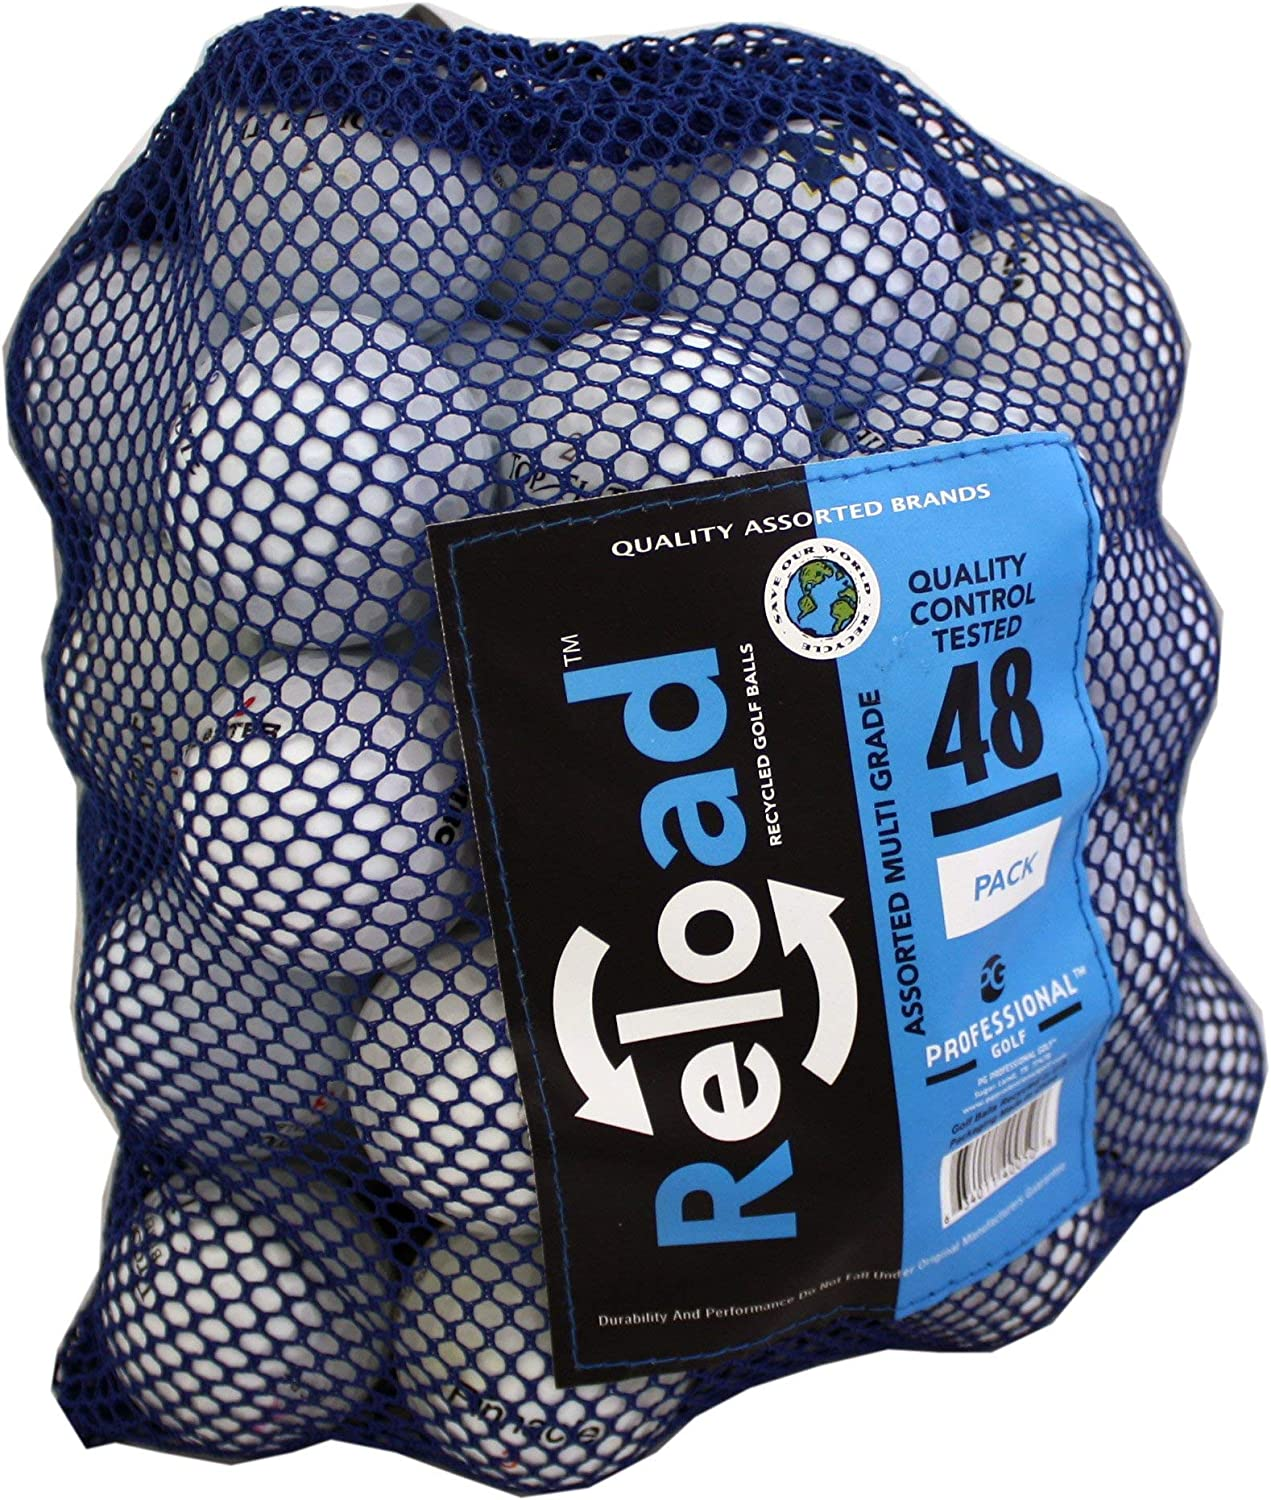 Clearance SALE Limited time Reload Recycled ! Super beauty product restock quality top! Golf Balls Bag Mesh 48 Ball